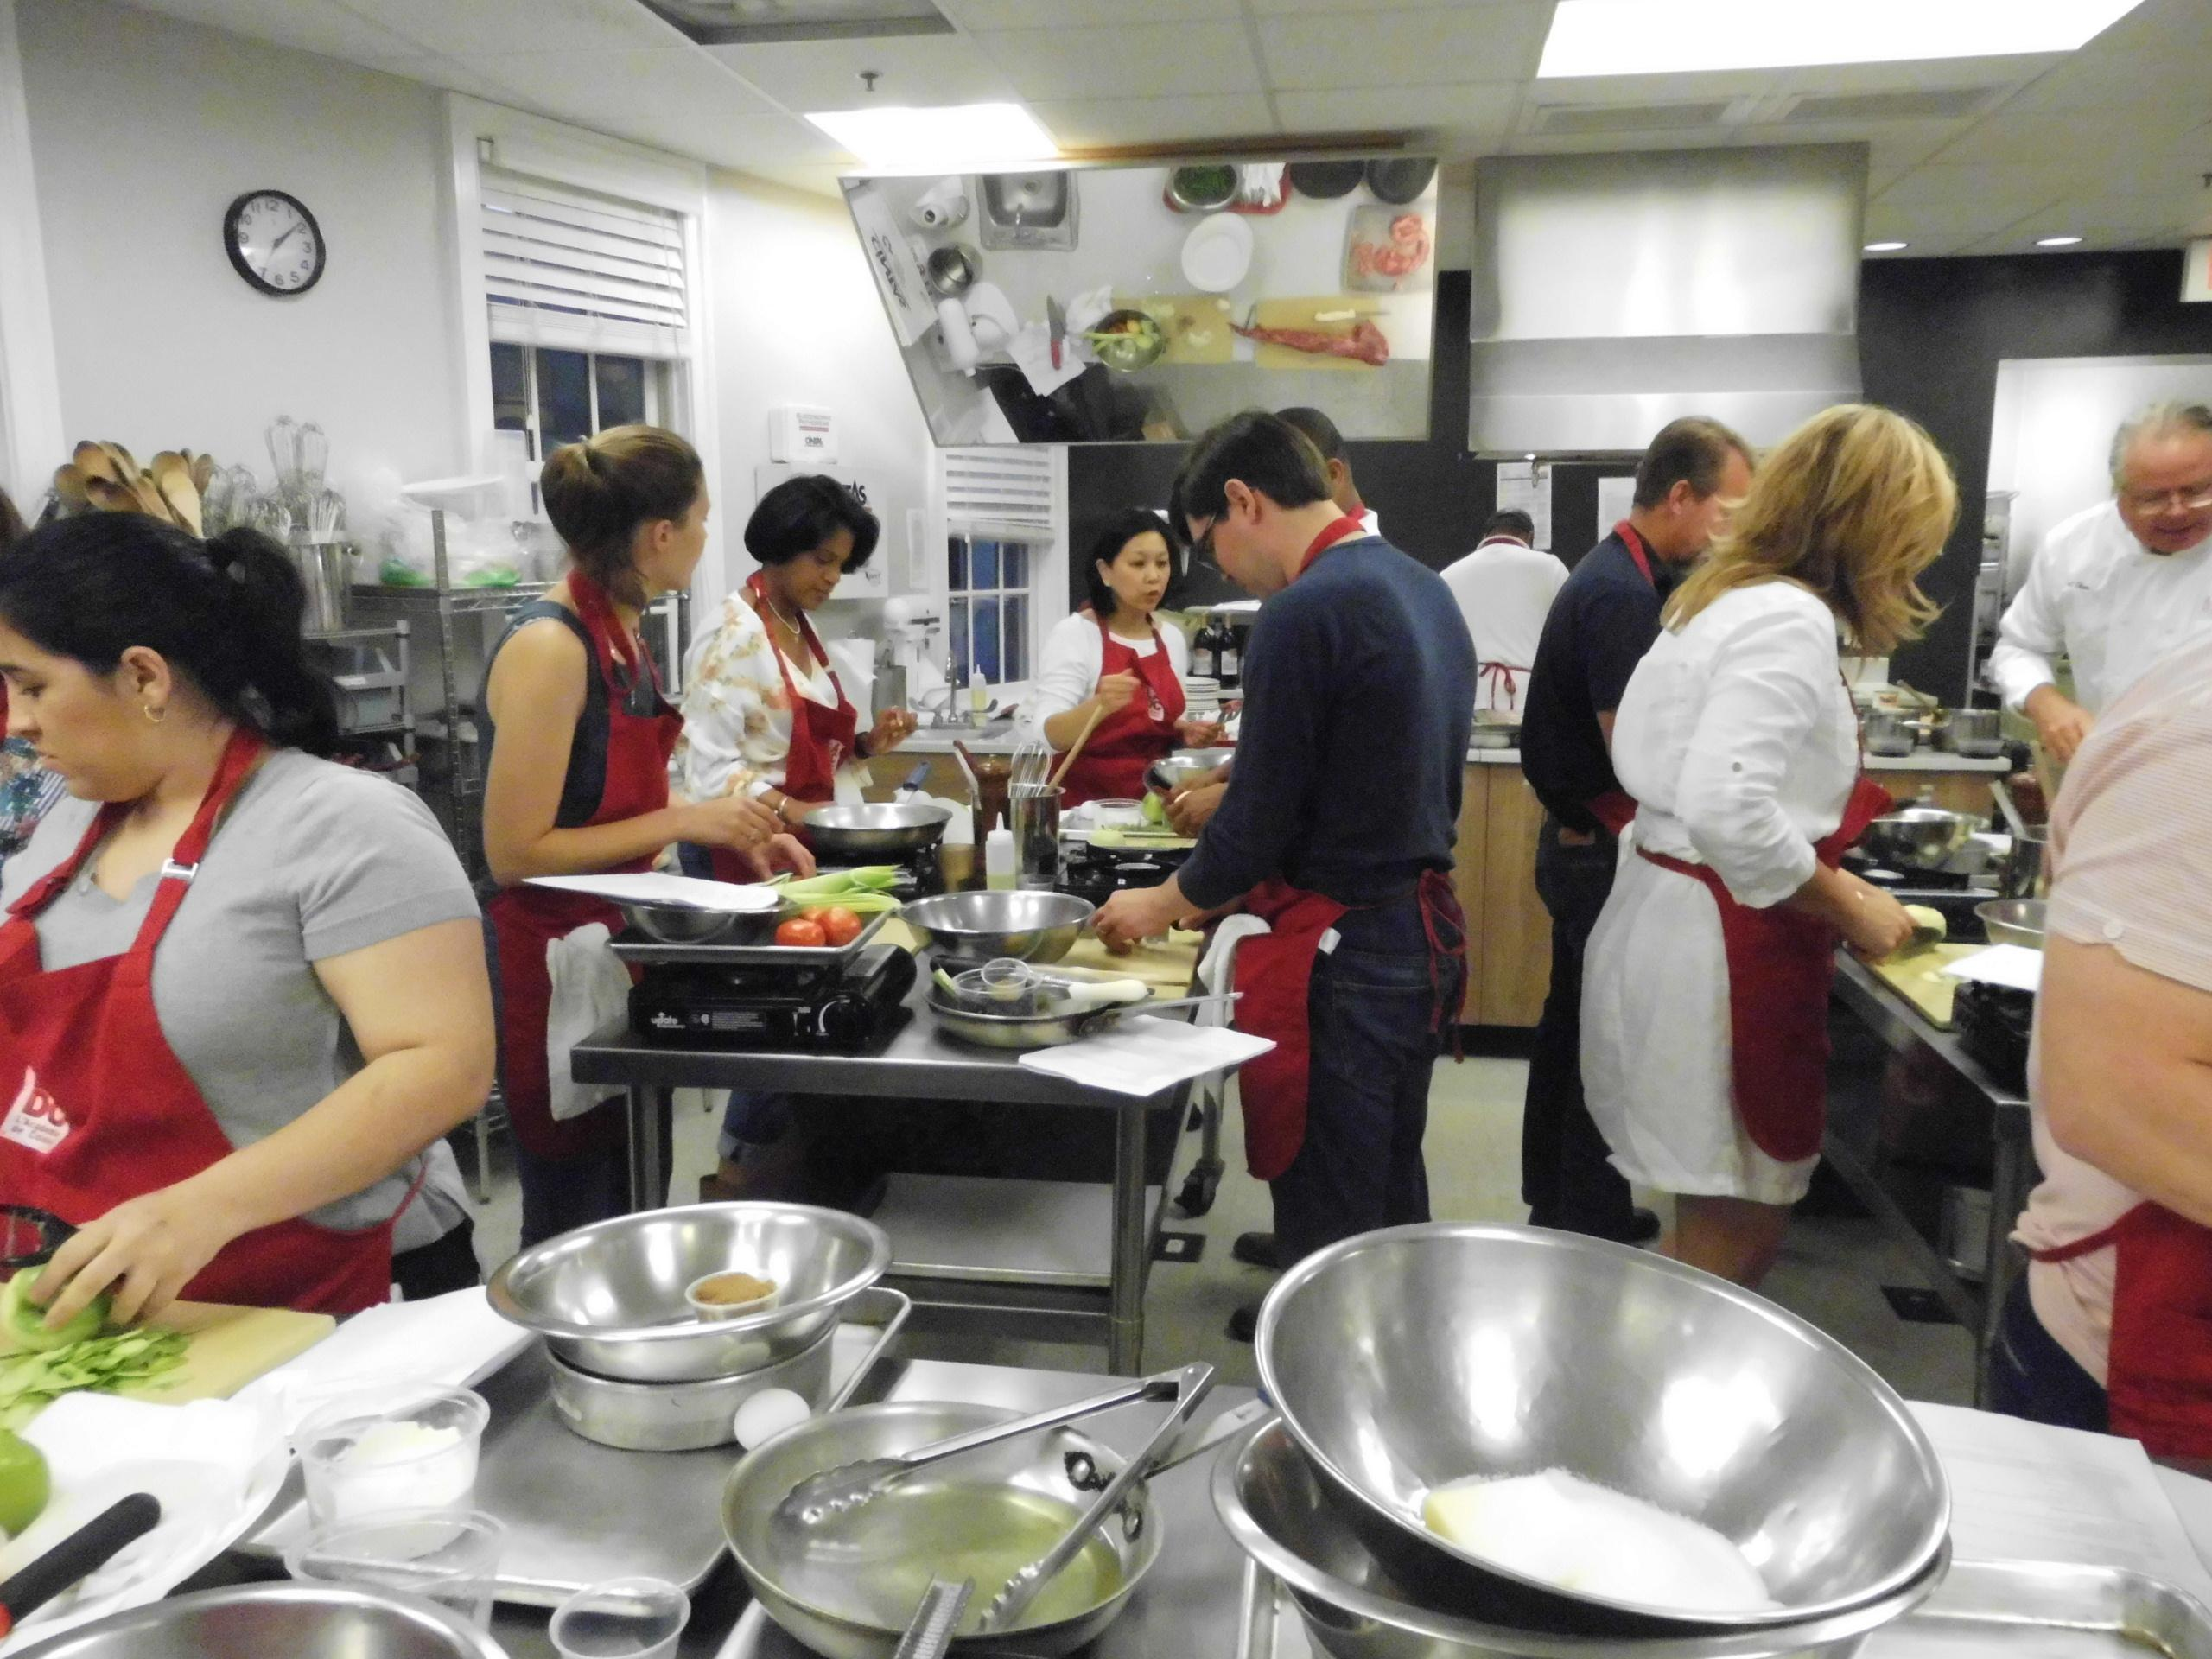 Cooking class at L'Academie (Paul Shapin)